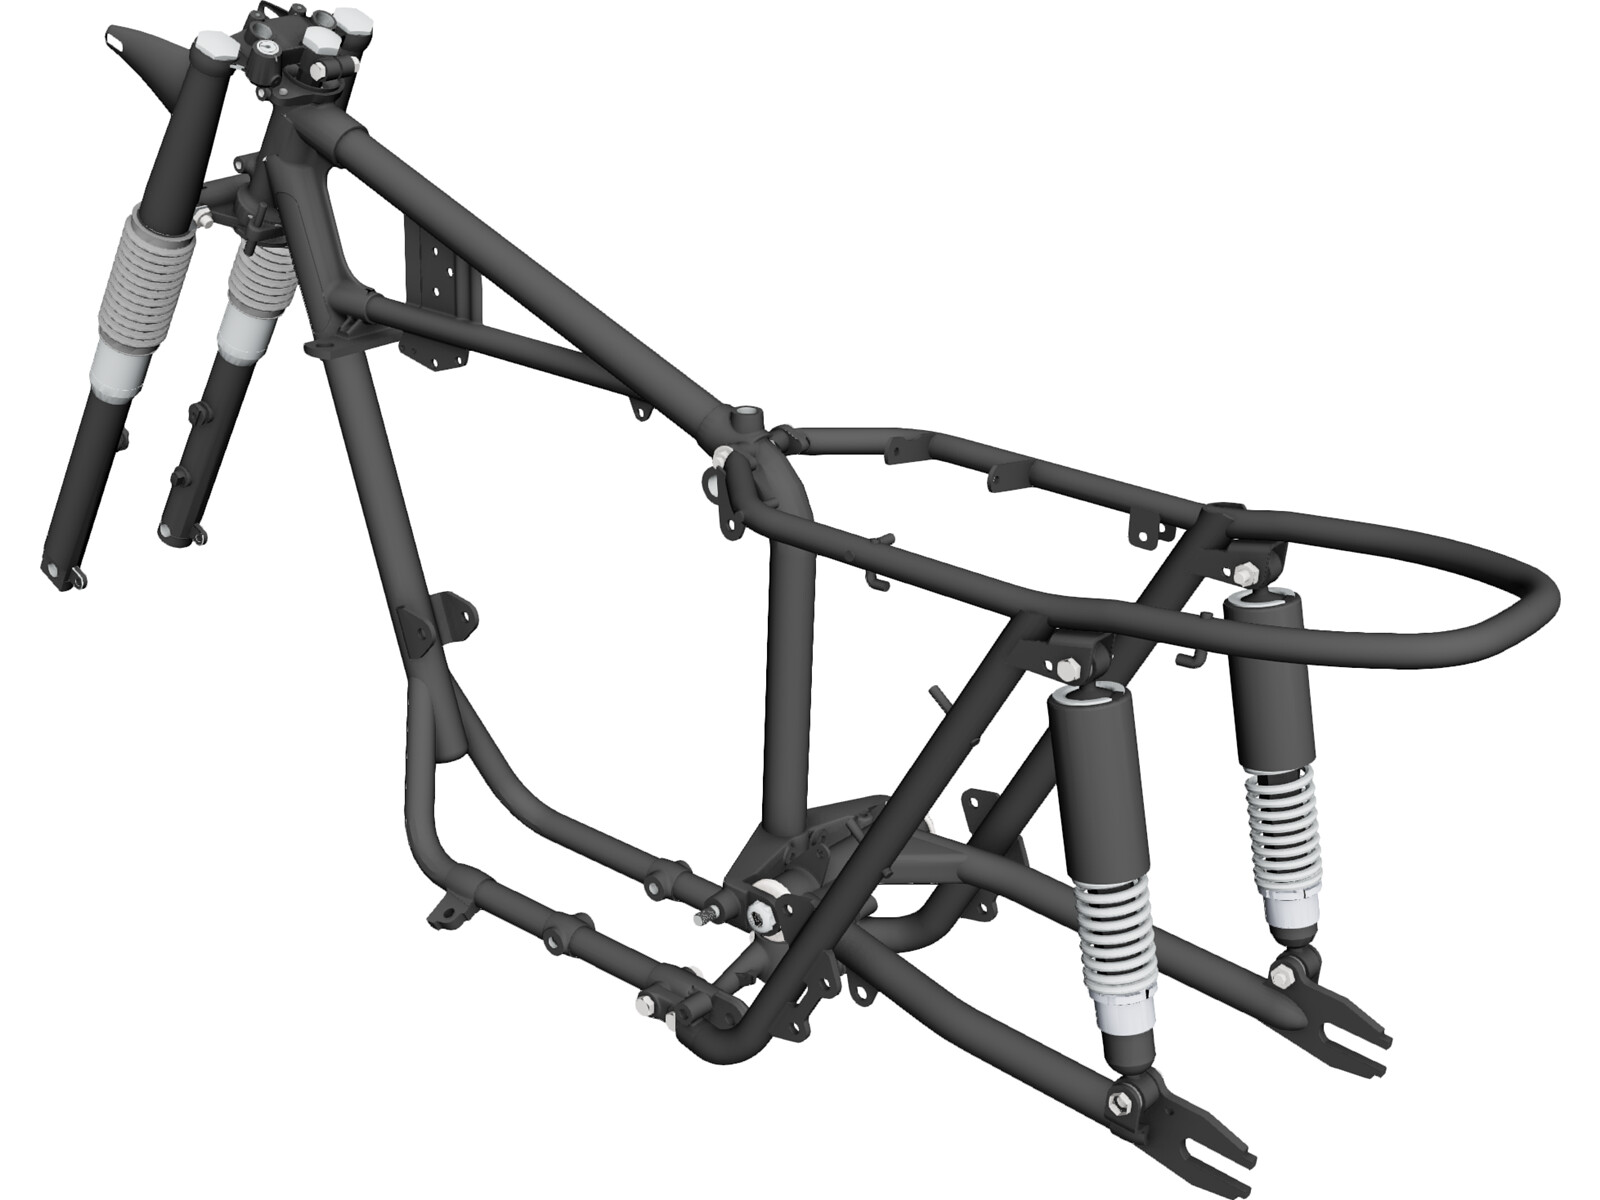 triumph t120 motorcycle frame 1968 3d model - Motorcycle Frame